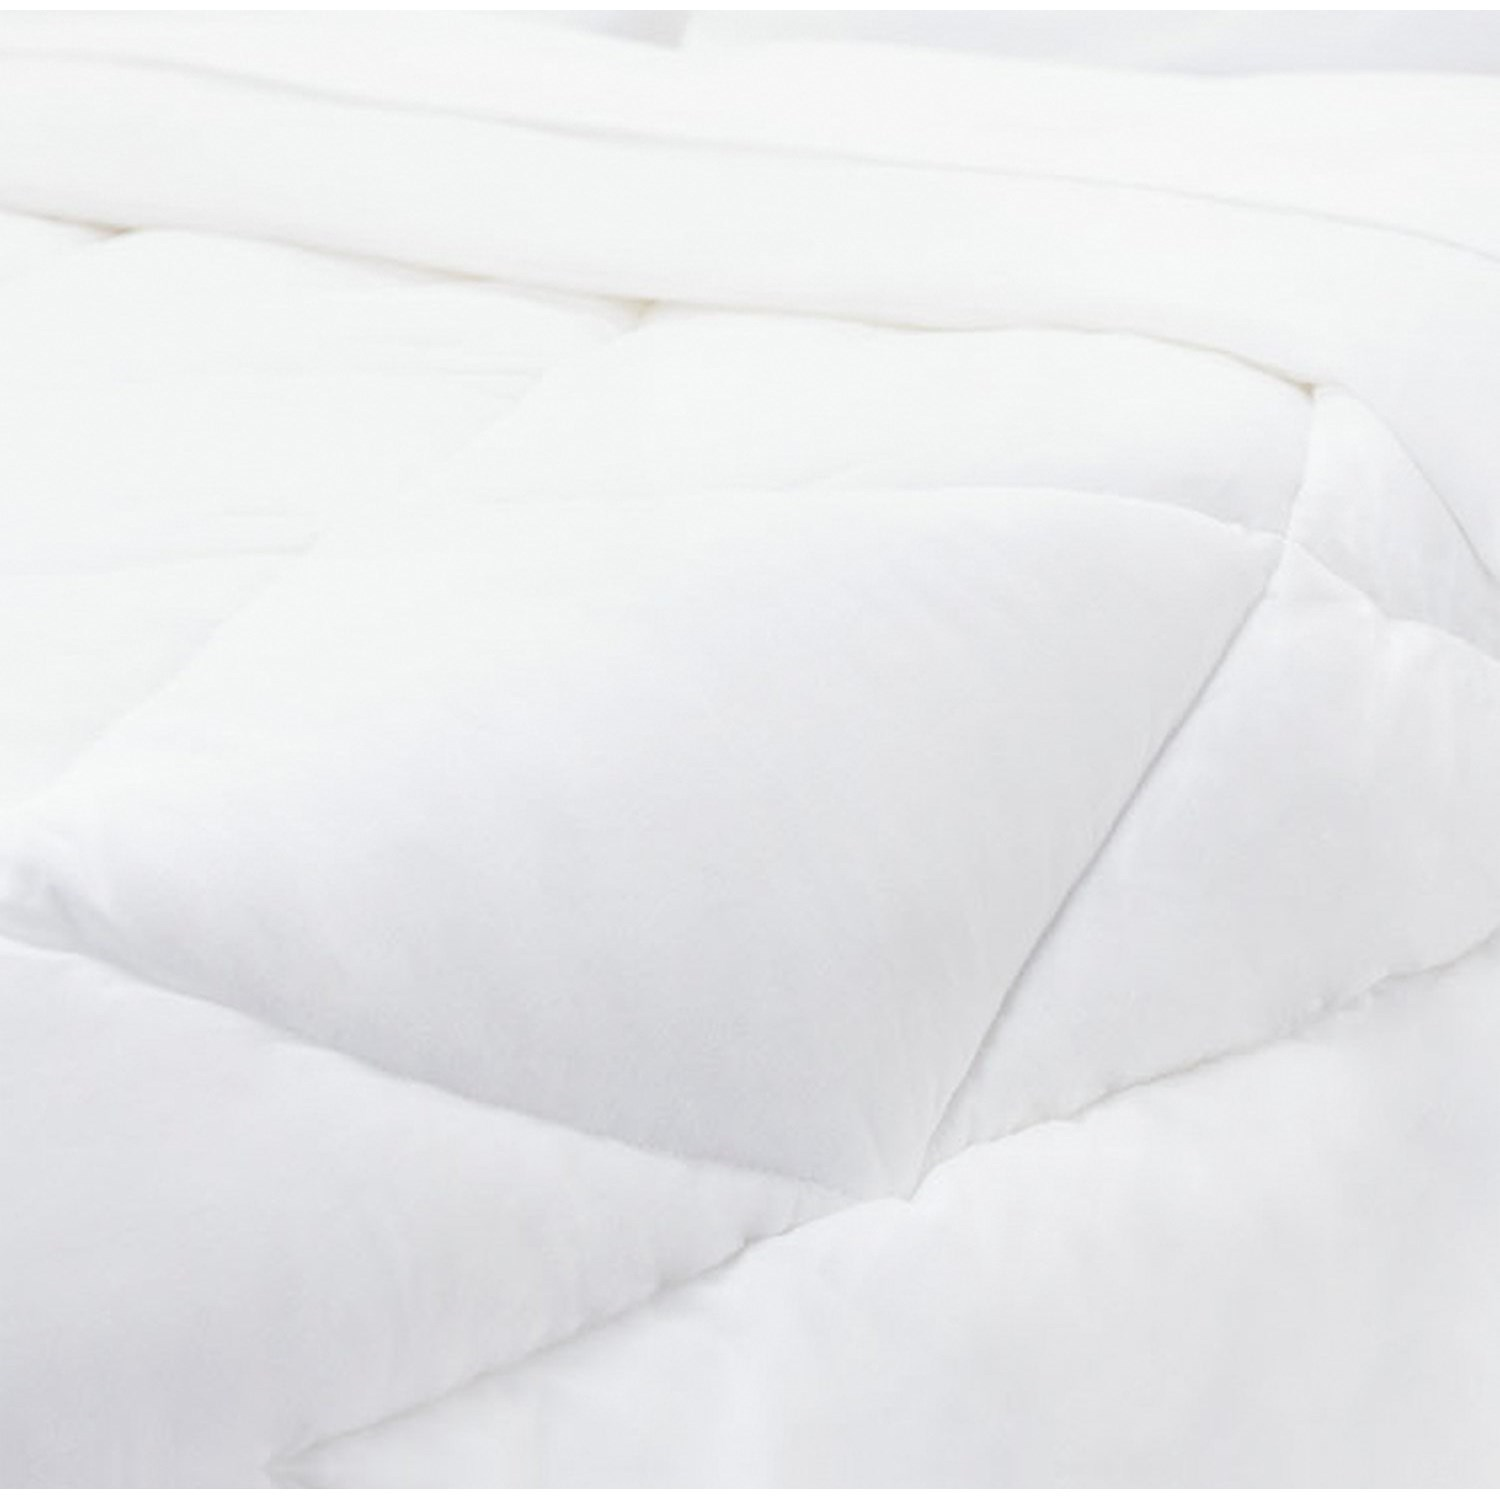 Malouf Down Alternative King Down Alternative Comforter  - Item Number: MA28KKDACO